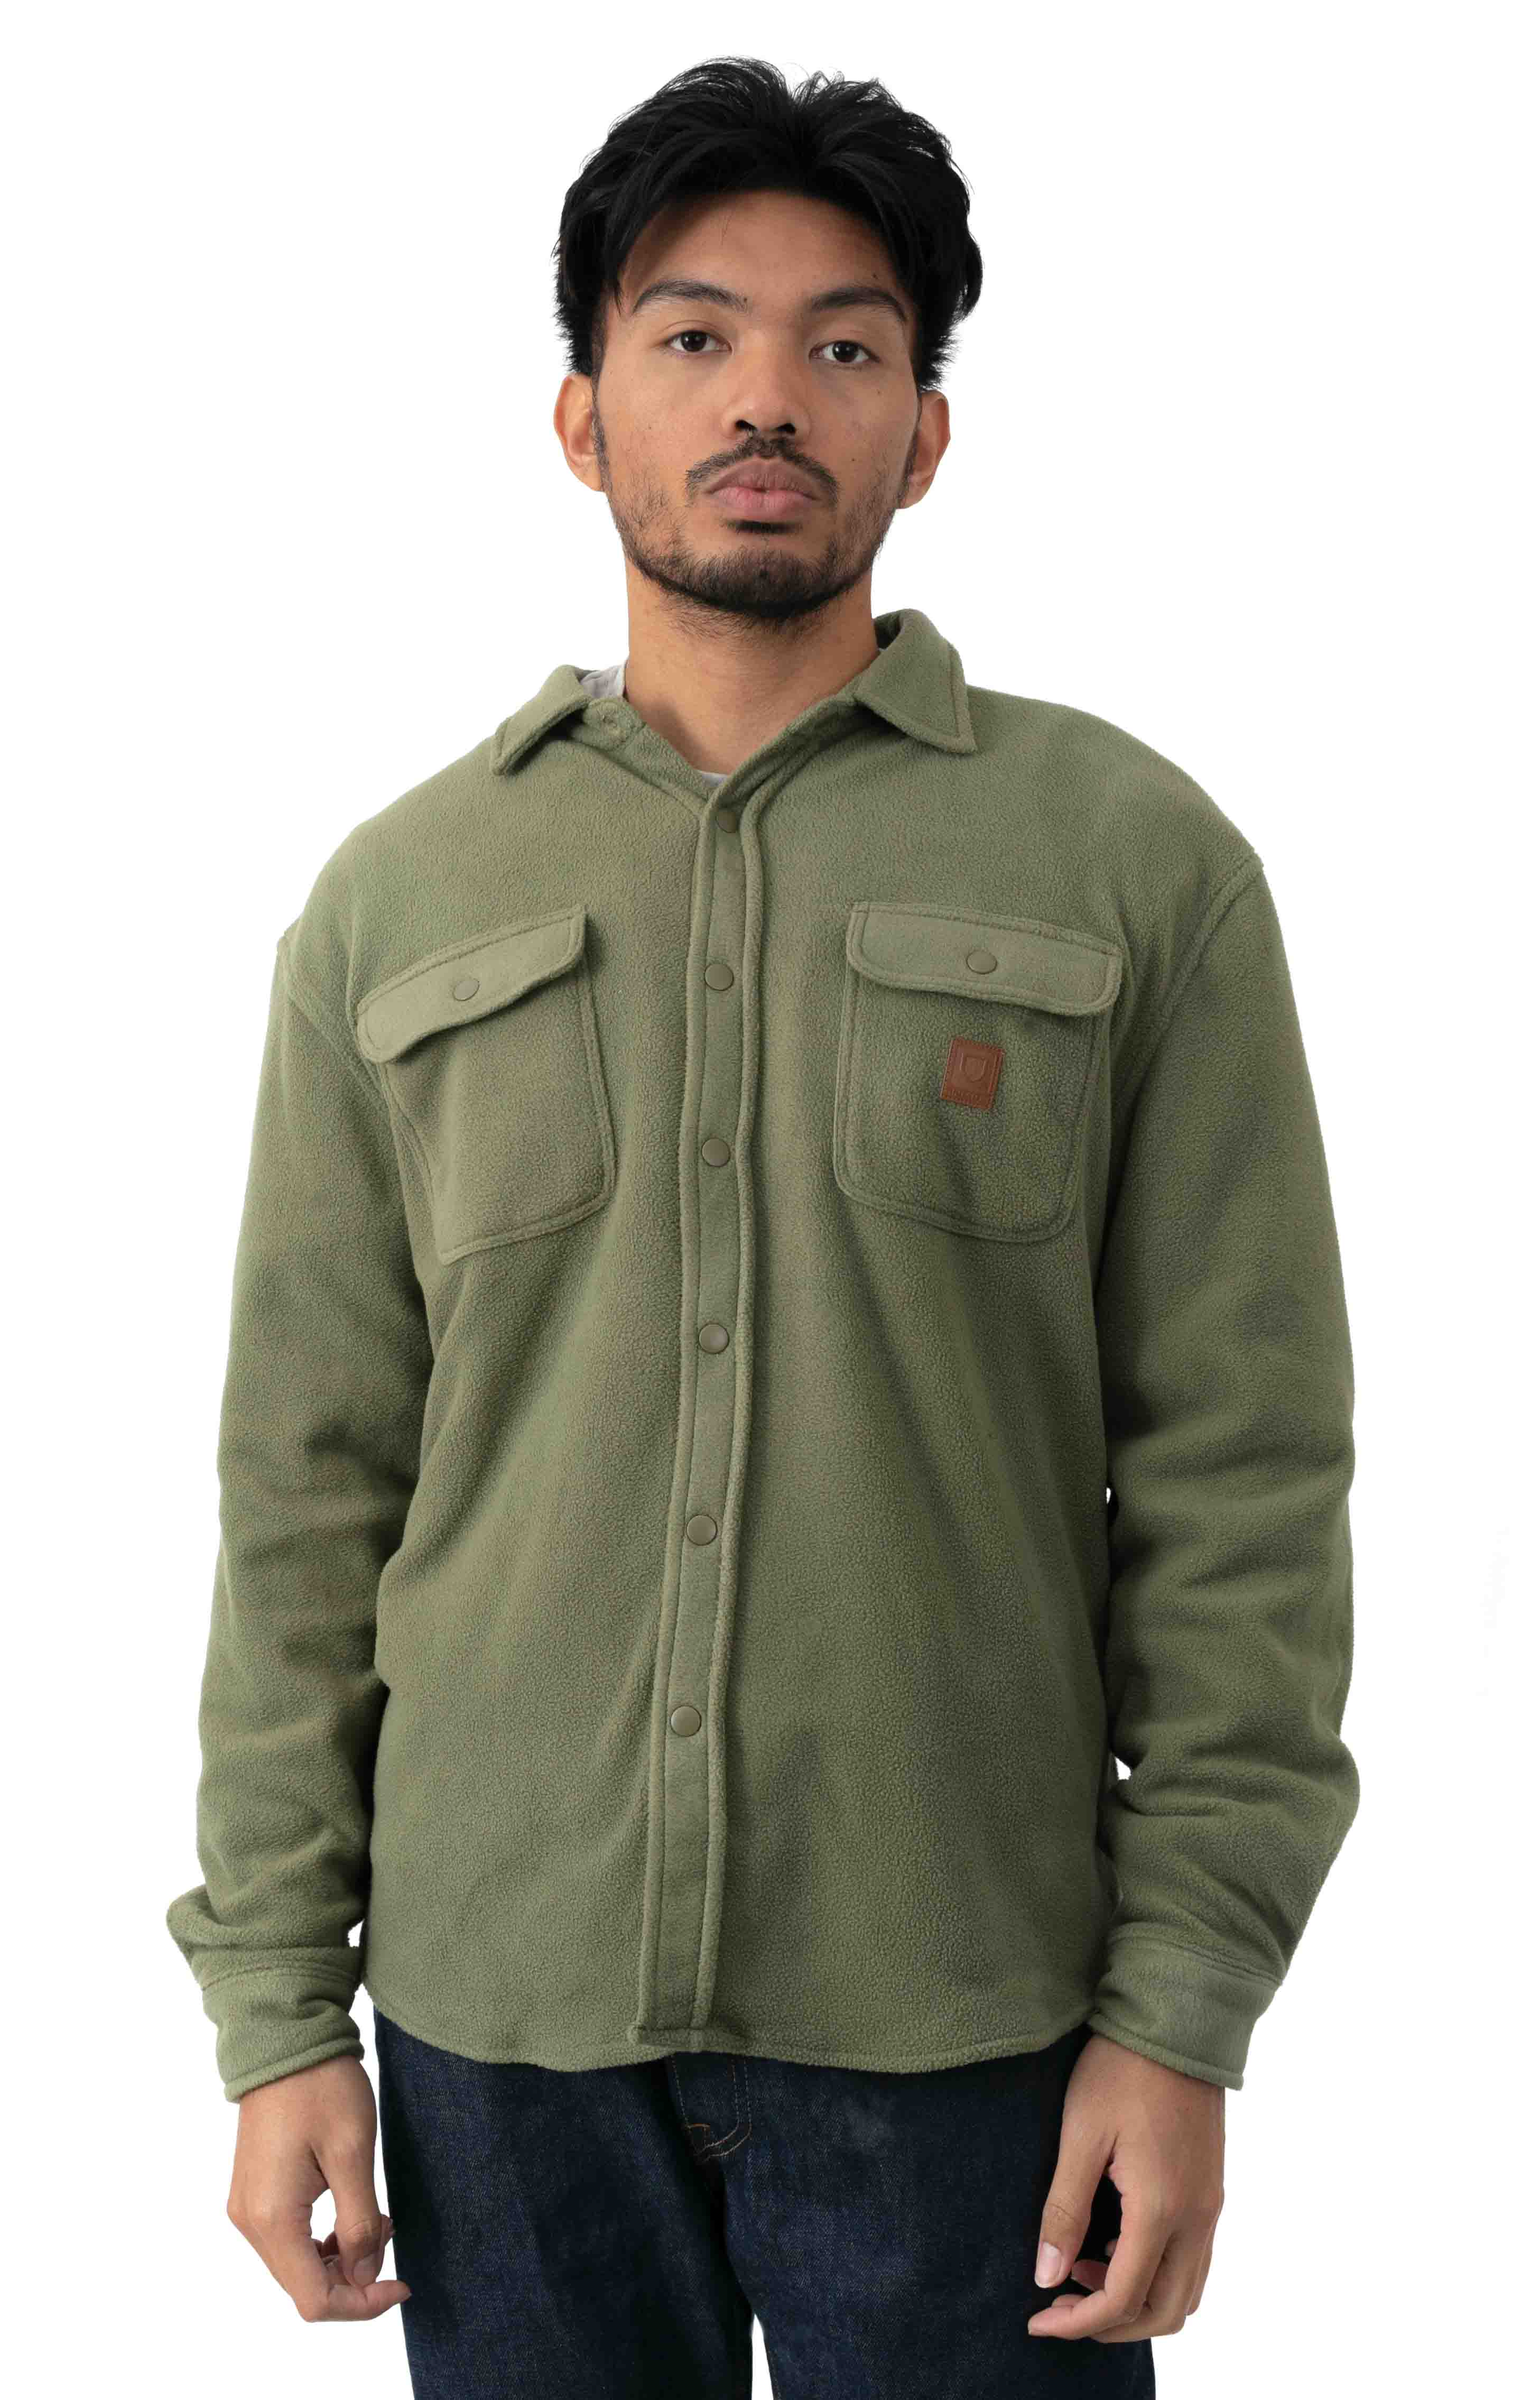 Bowery L/S Arctic Stretch Fleece - Military Olive